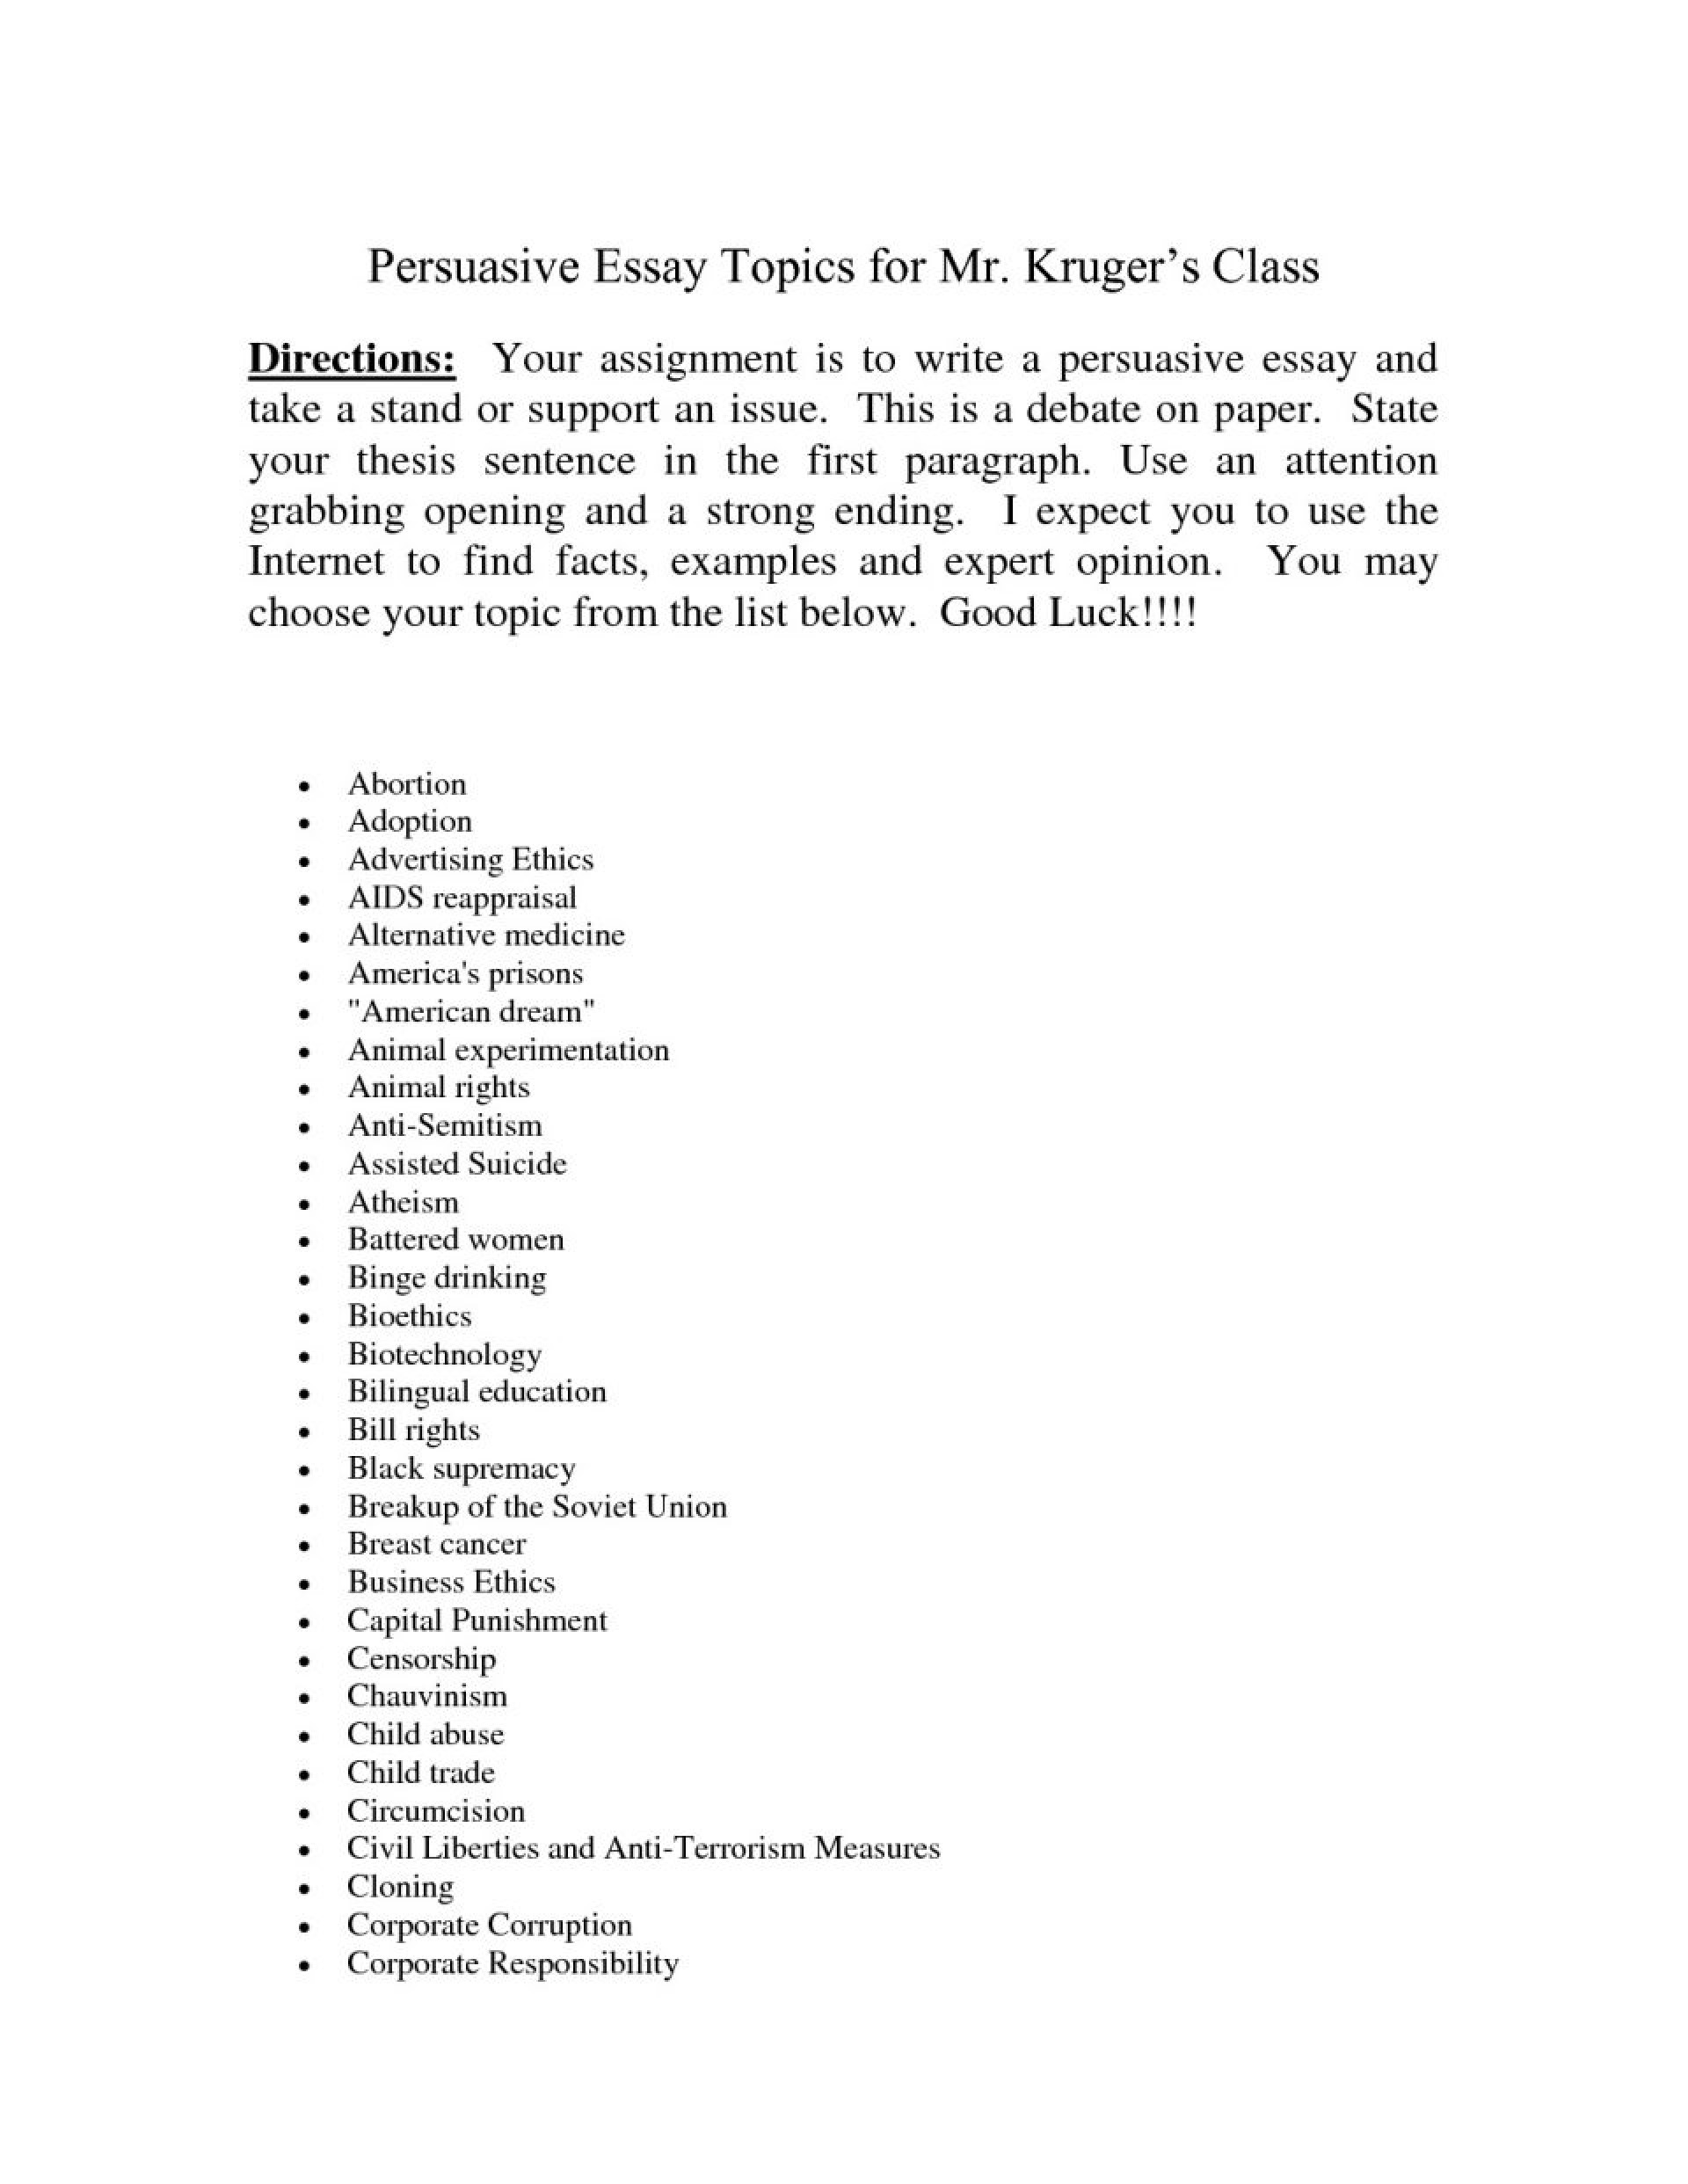 010 Topic For Essay Barca Fontanacountryinn Within Good Persuasive Narrative Topics To Write Abo Easy About Personal Descriptivearch Paper Informative Synthesis College 960x1242 Incredible Research Interesting Funny 1920